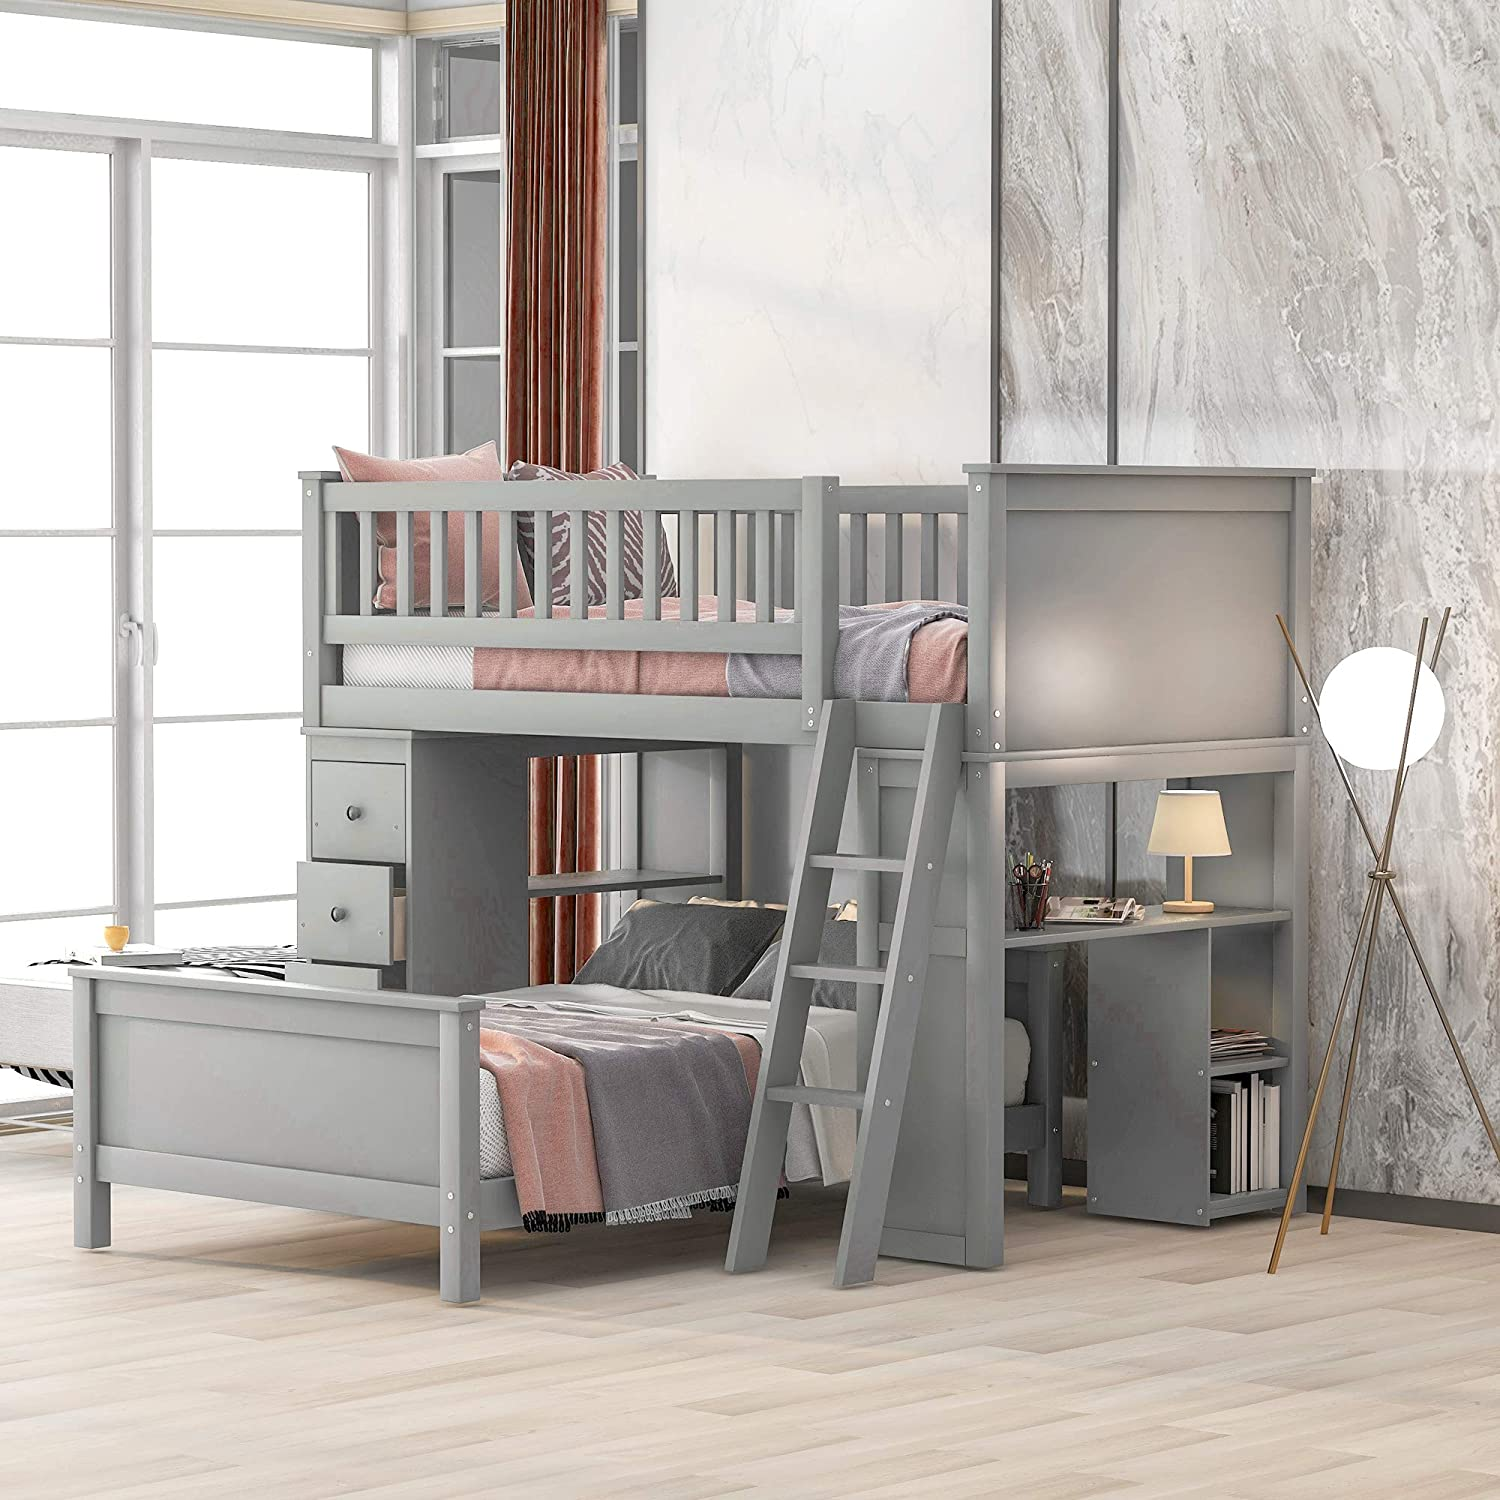 Merax Twin Over Twin Loft Bed Bunk Bed with Drawers and Shelves, Twin Bed Set with Desks,Gray